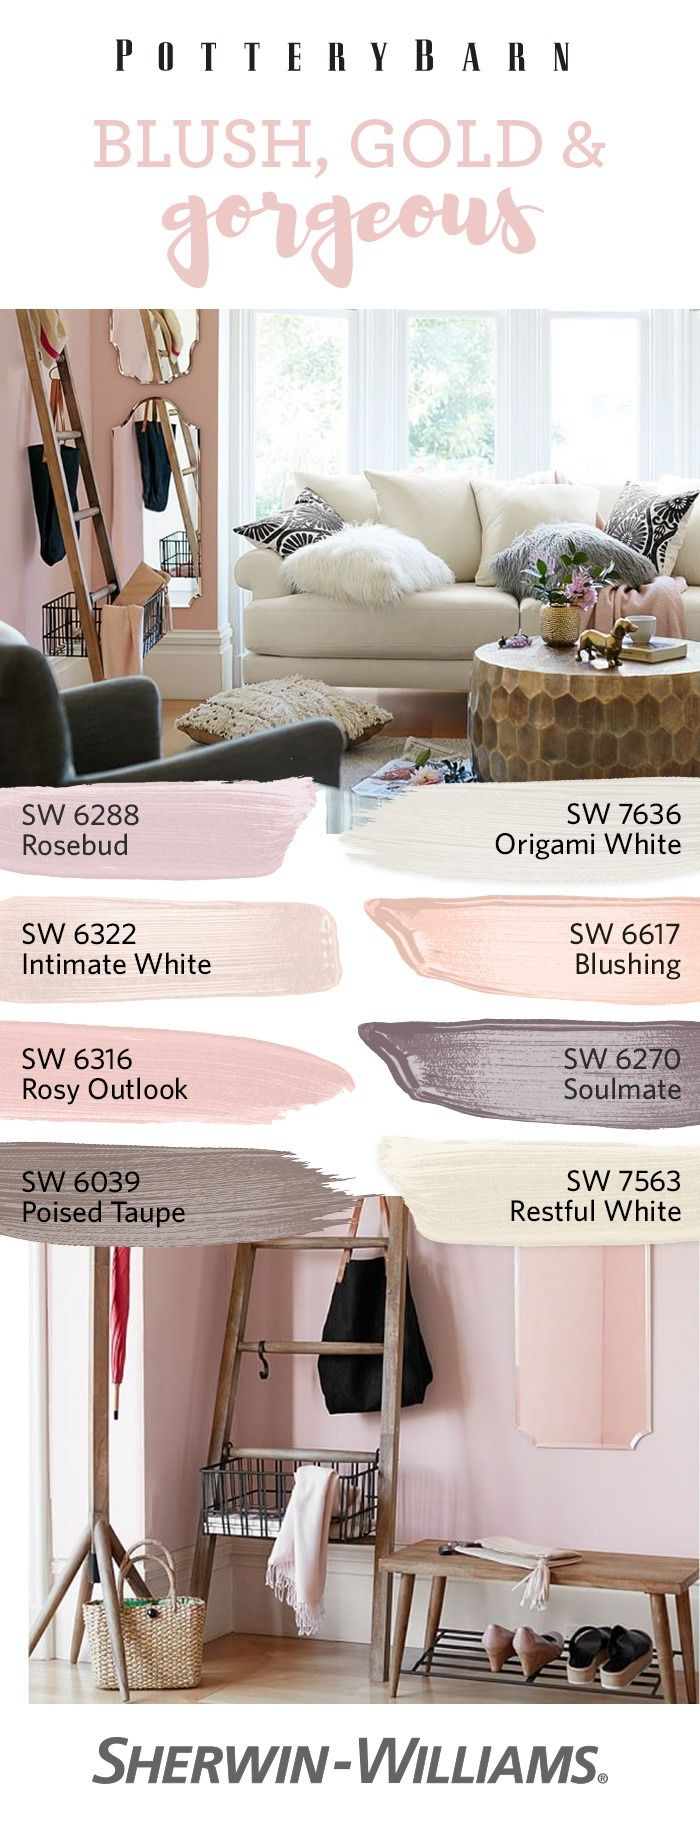 Pottery Barn Living Room Colors 43 Best Images About Pottery Barn Paint Collection On Pinterest